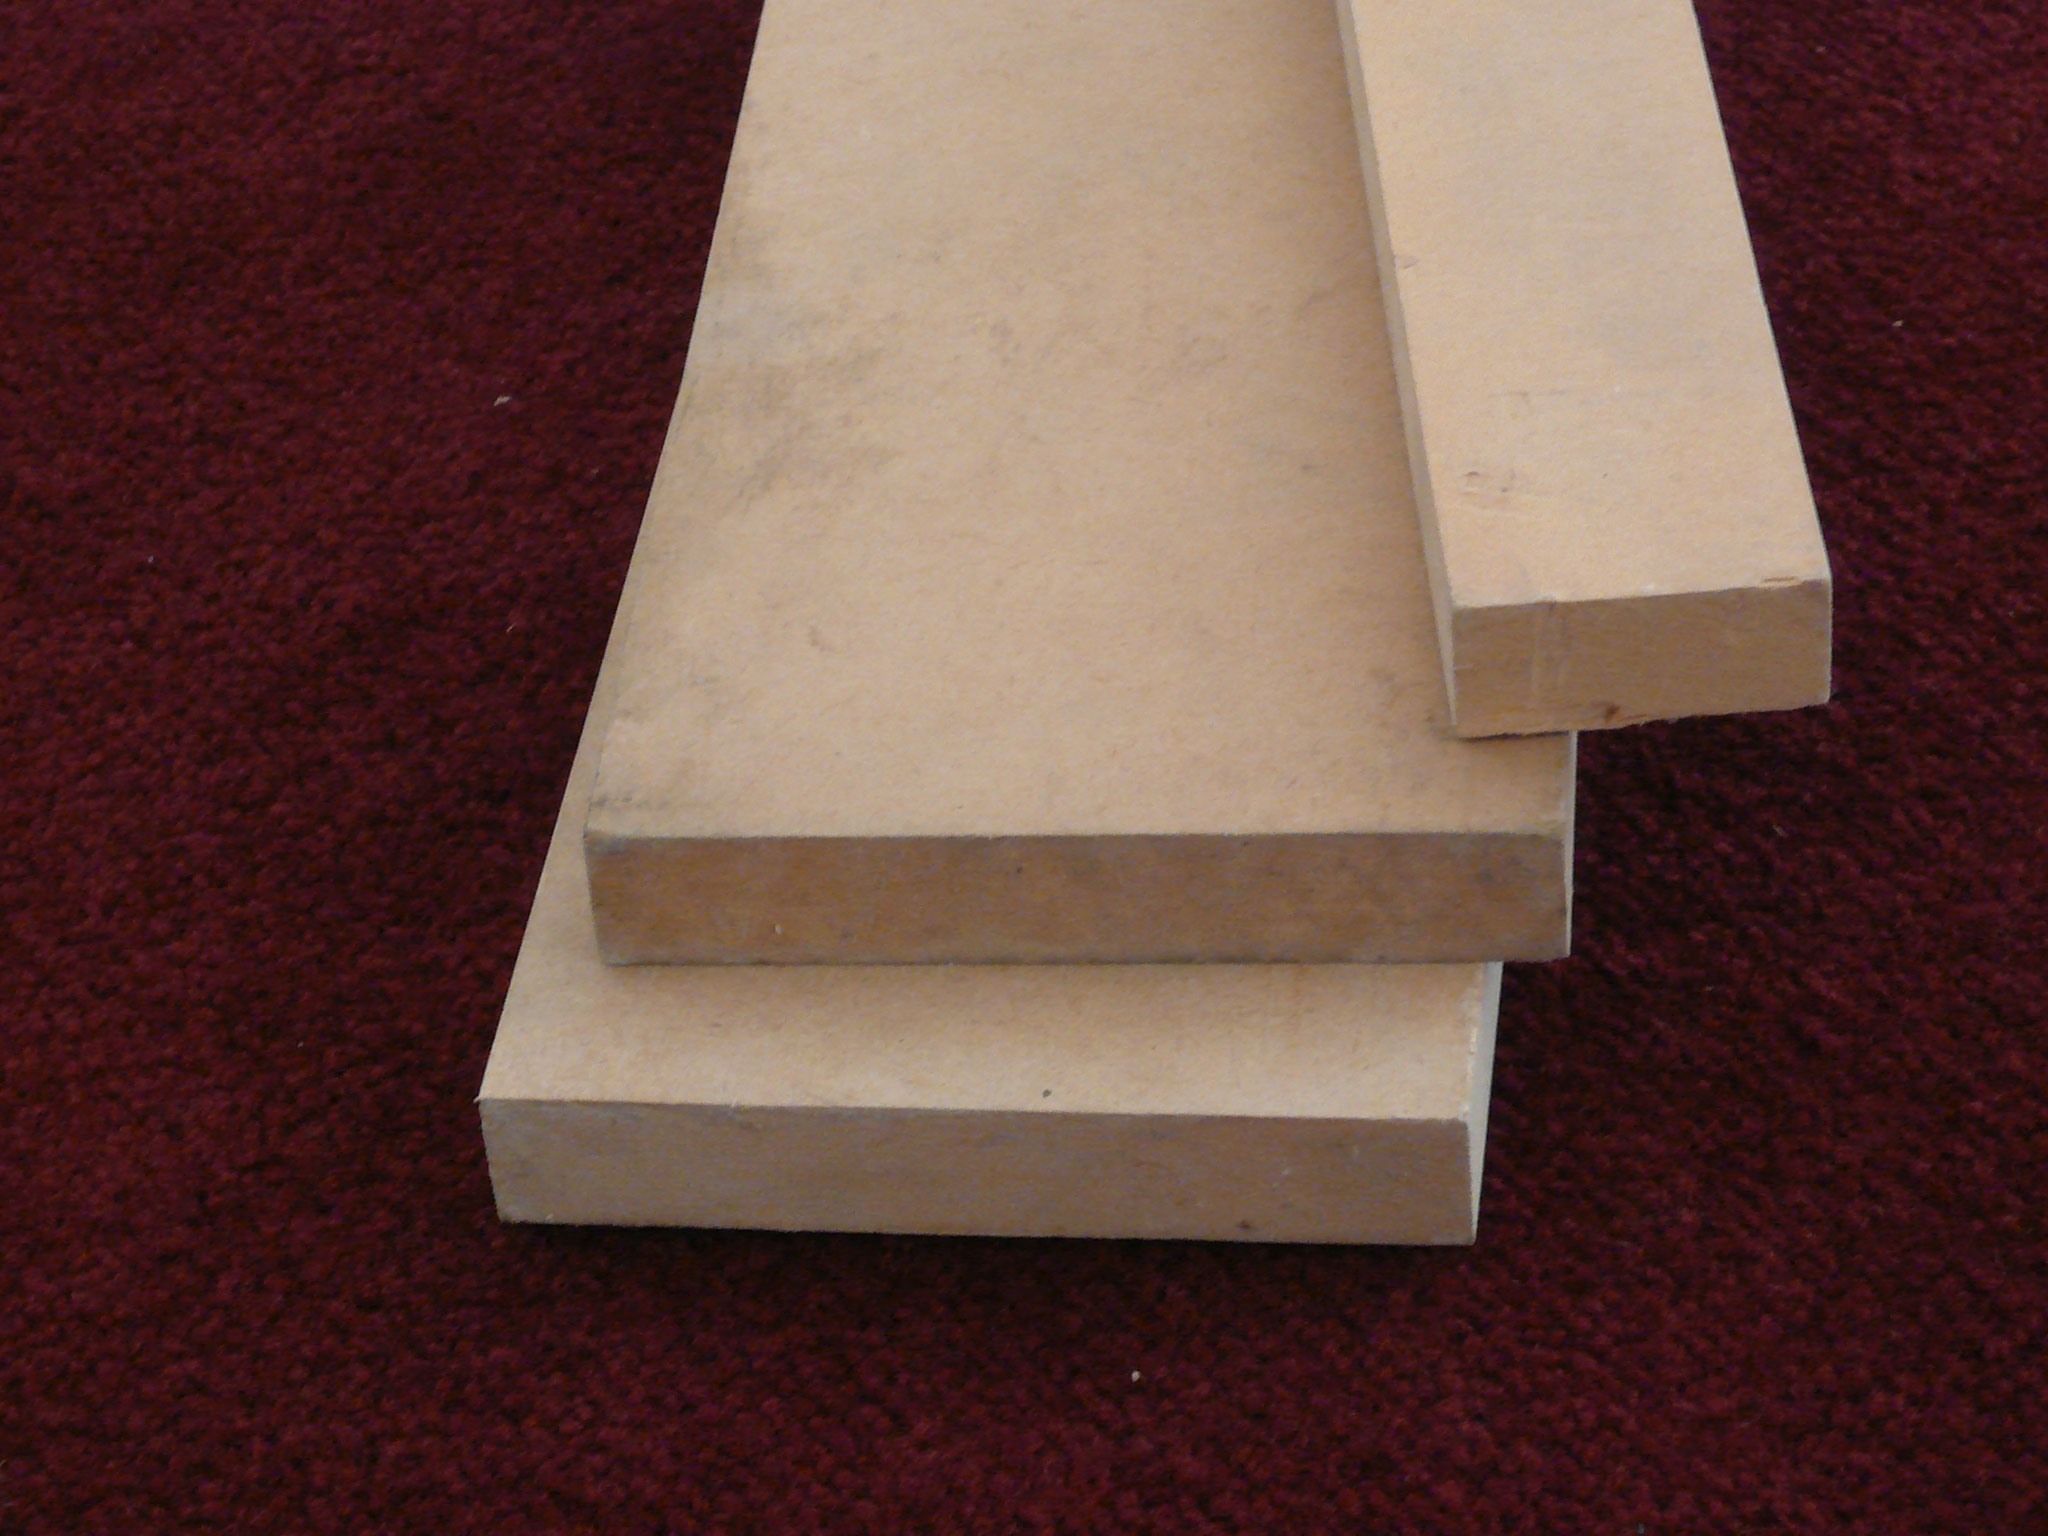 MDF  by: Vaderluck, CC BY-SA 3.0